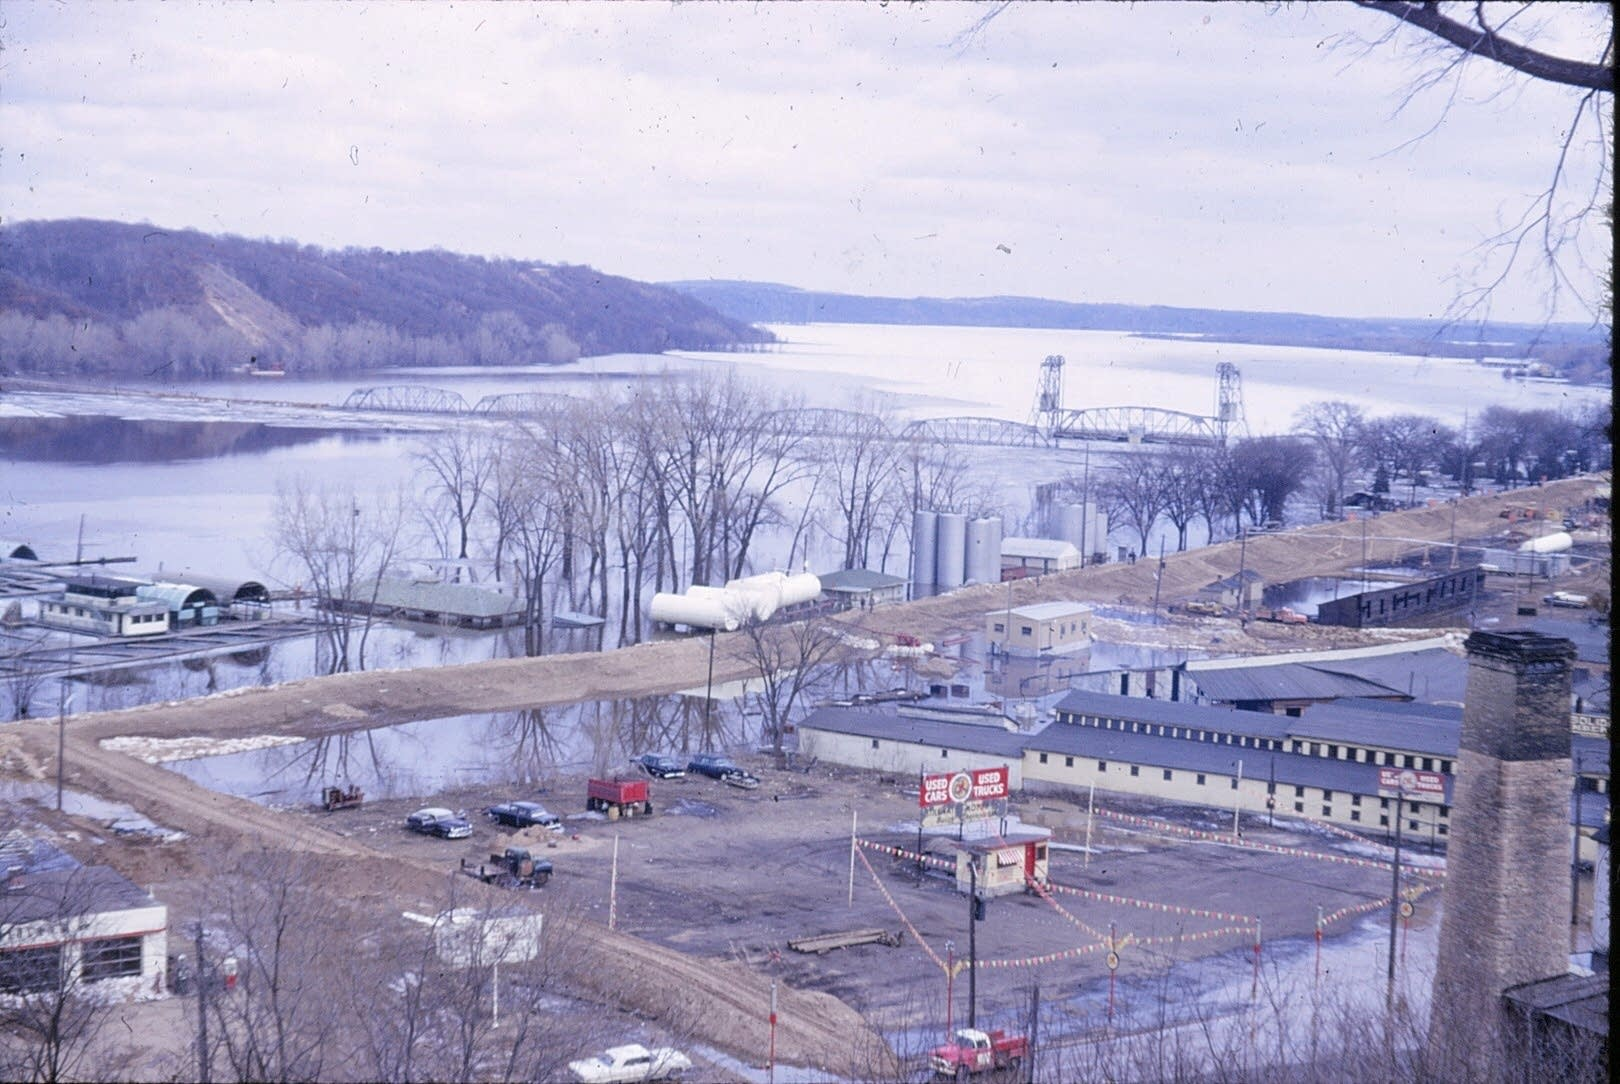 The view of Stillwater from Pioneer Park in 1965.